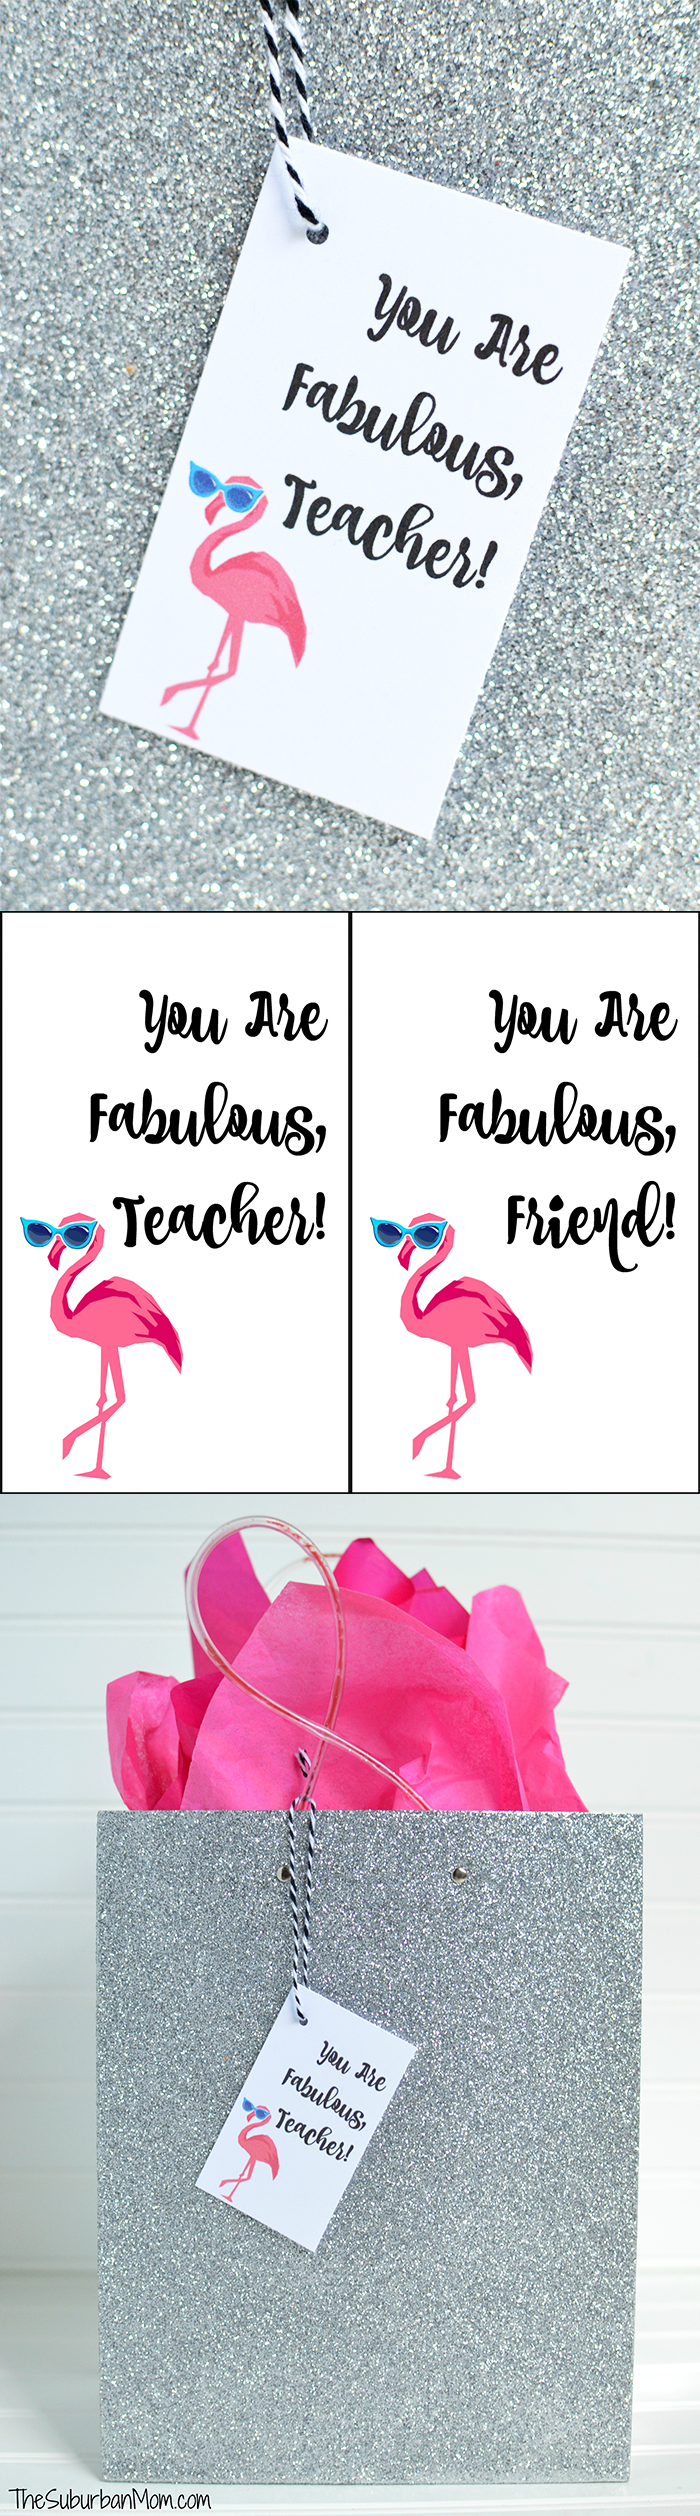 Free Flamingo Printable Gift Tag